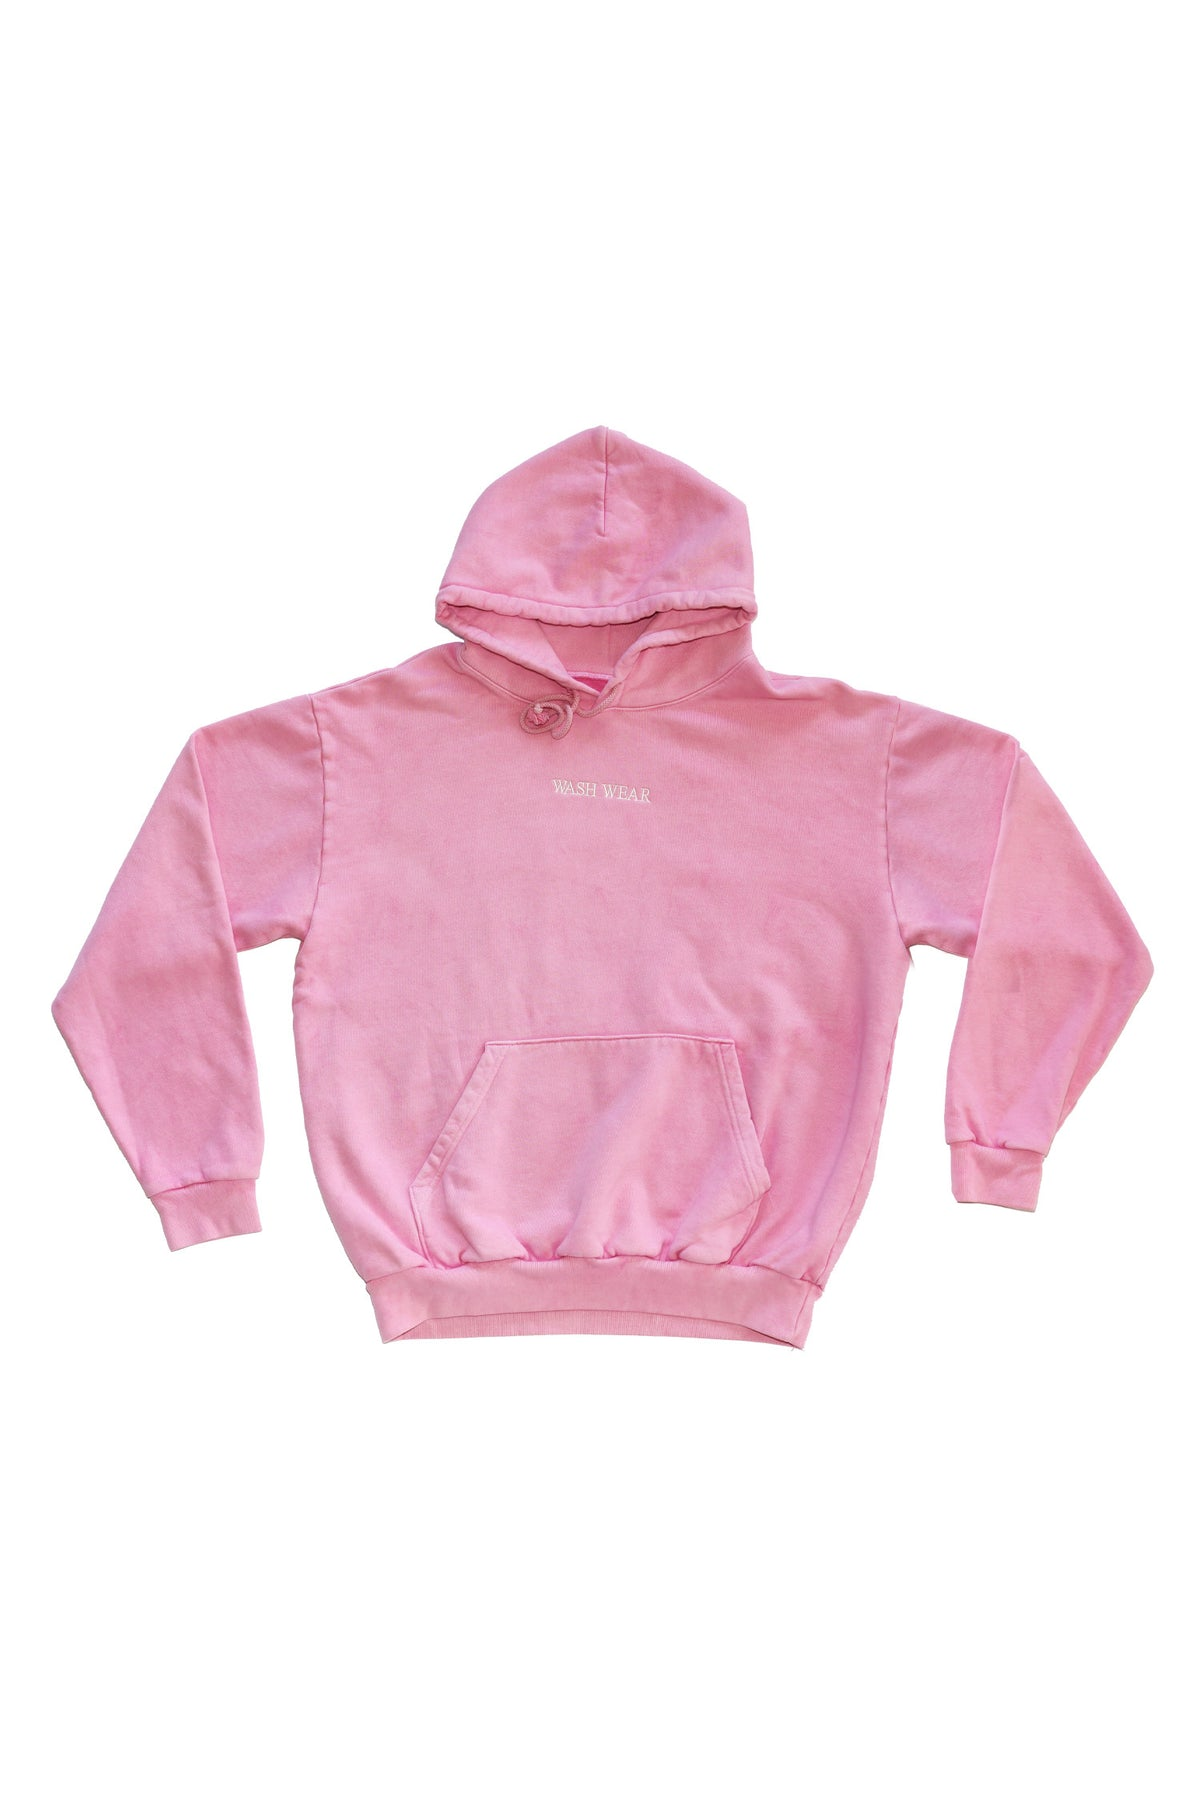 WASH WEAR Hoodie With Embroidery